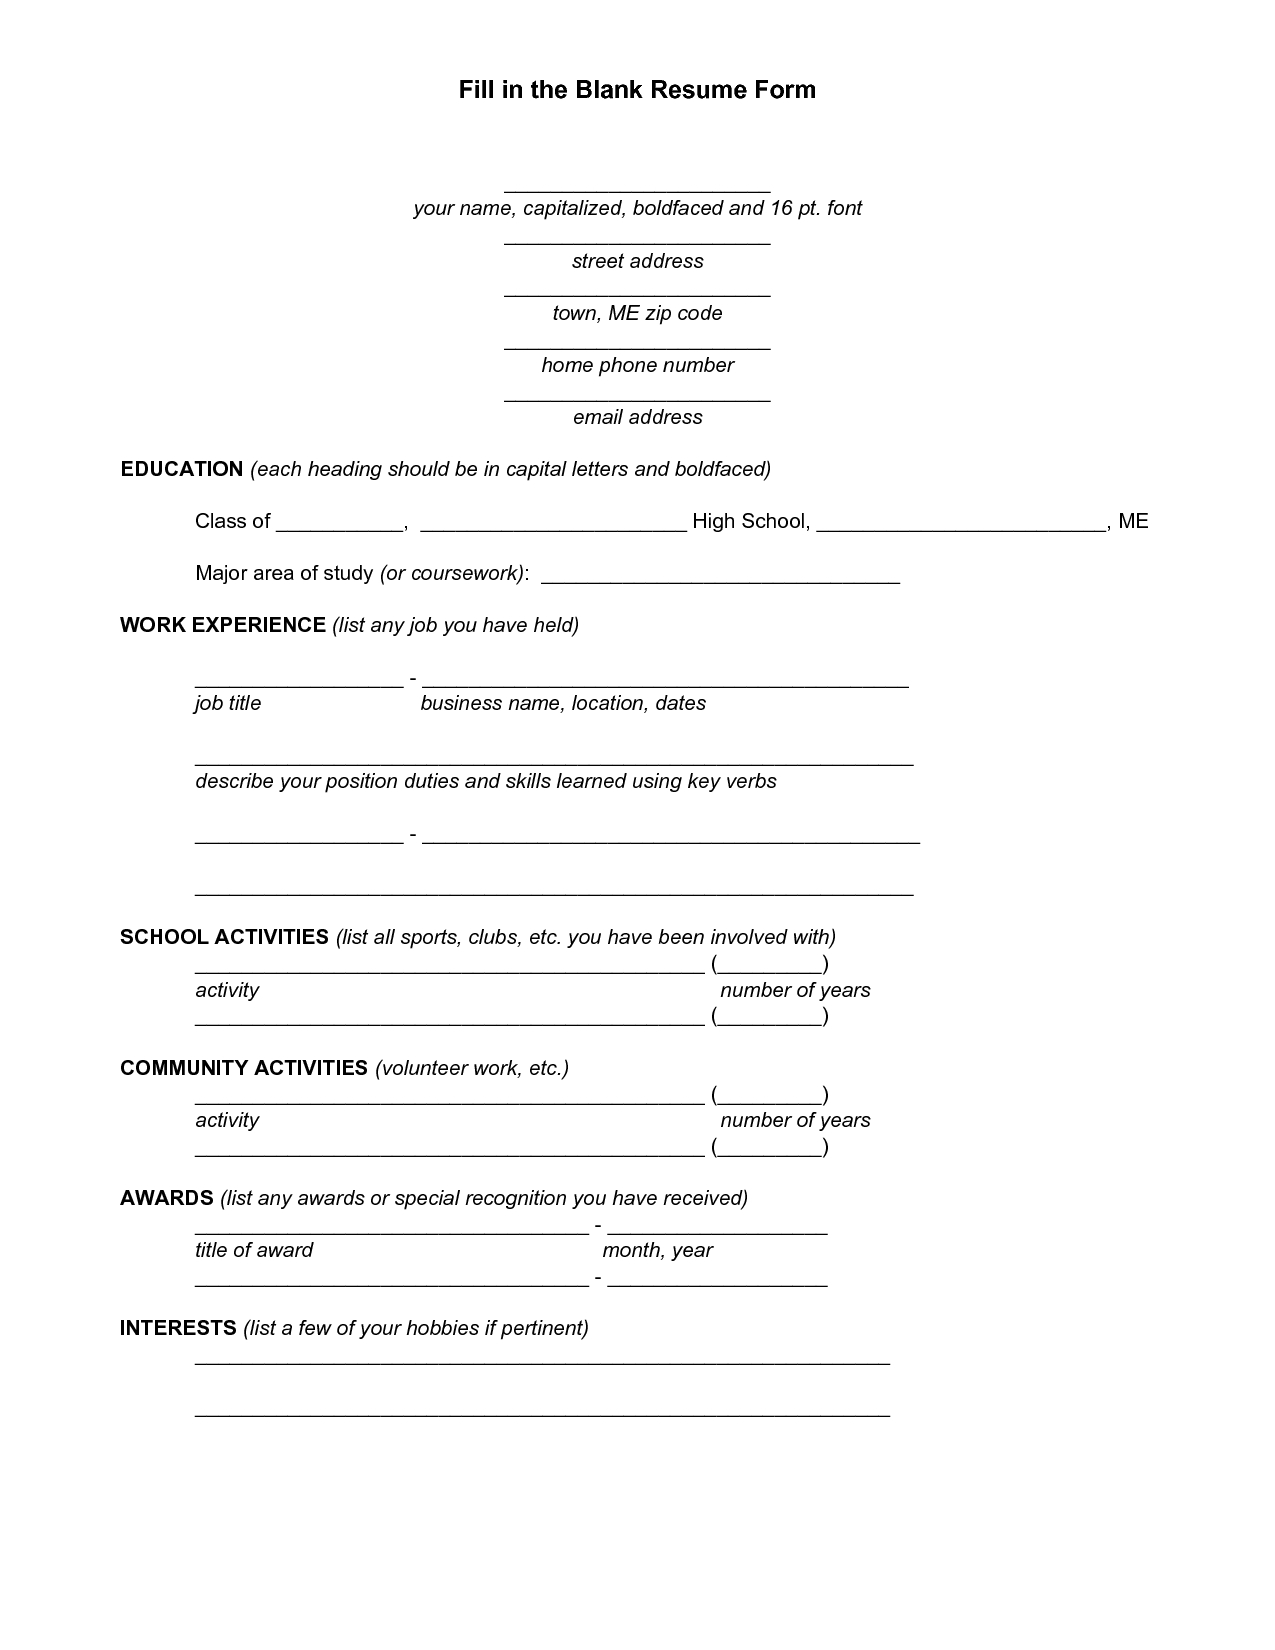 Resume Blank Forms To Fill Out | Fill In The Blank Resume Form - Pdf throughout Fill In The Blank Template